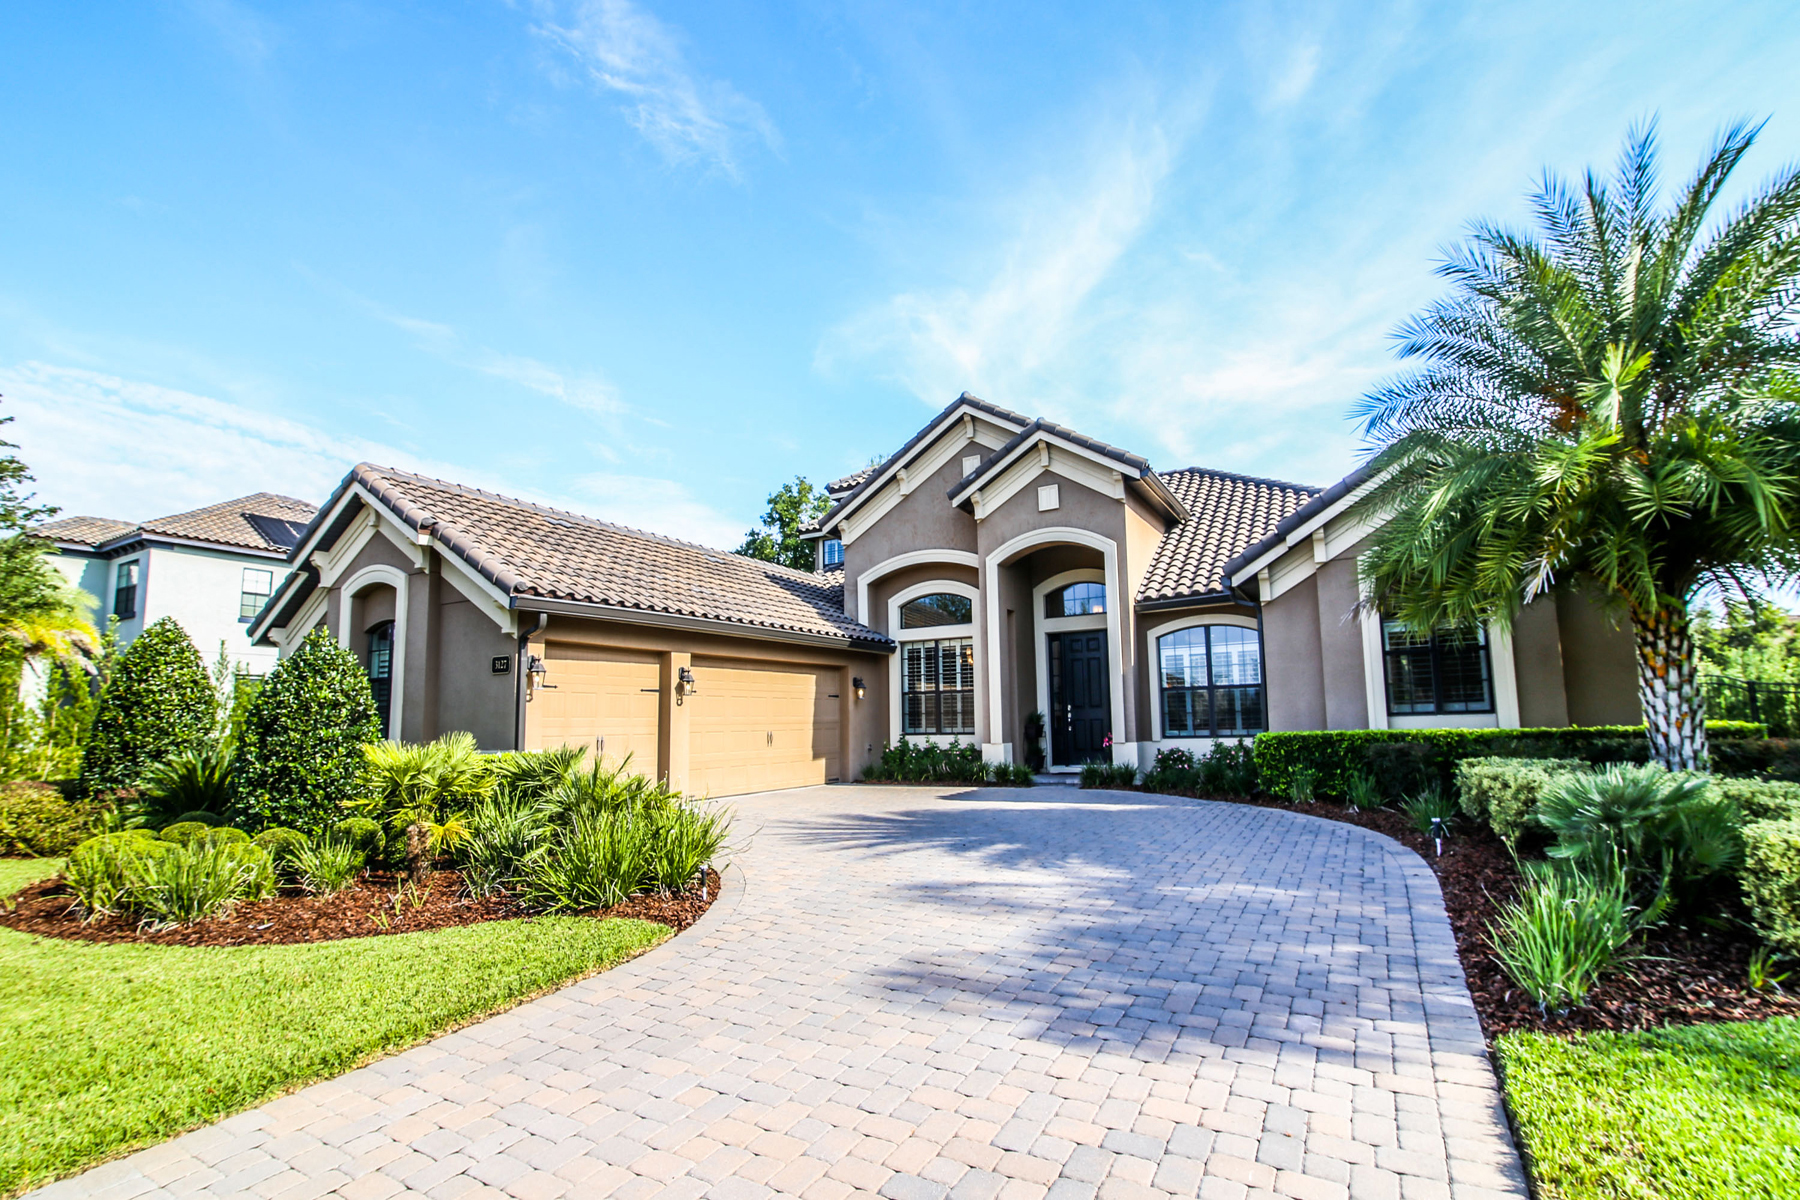 Single Family Home for Sale at Longwood, Florida 3127 Bentonshire Place Longwood, Florida 32779 United States